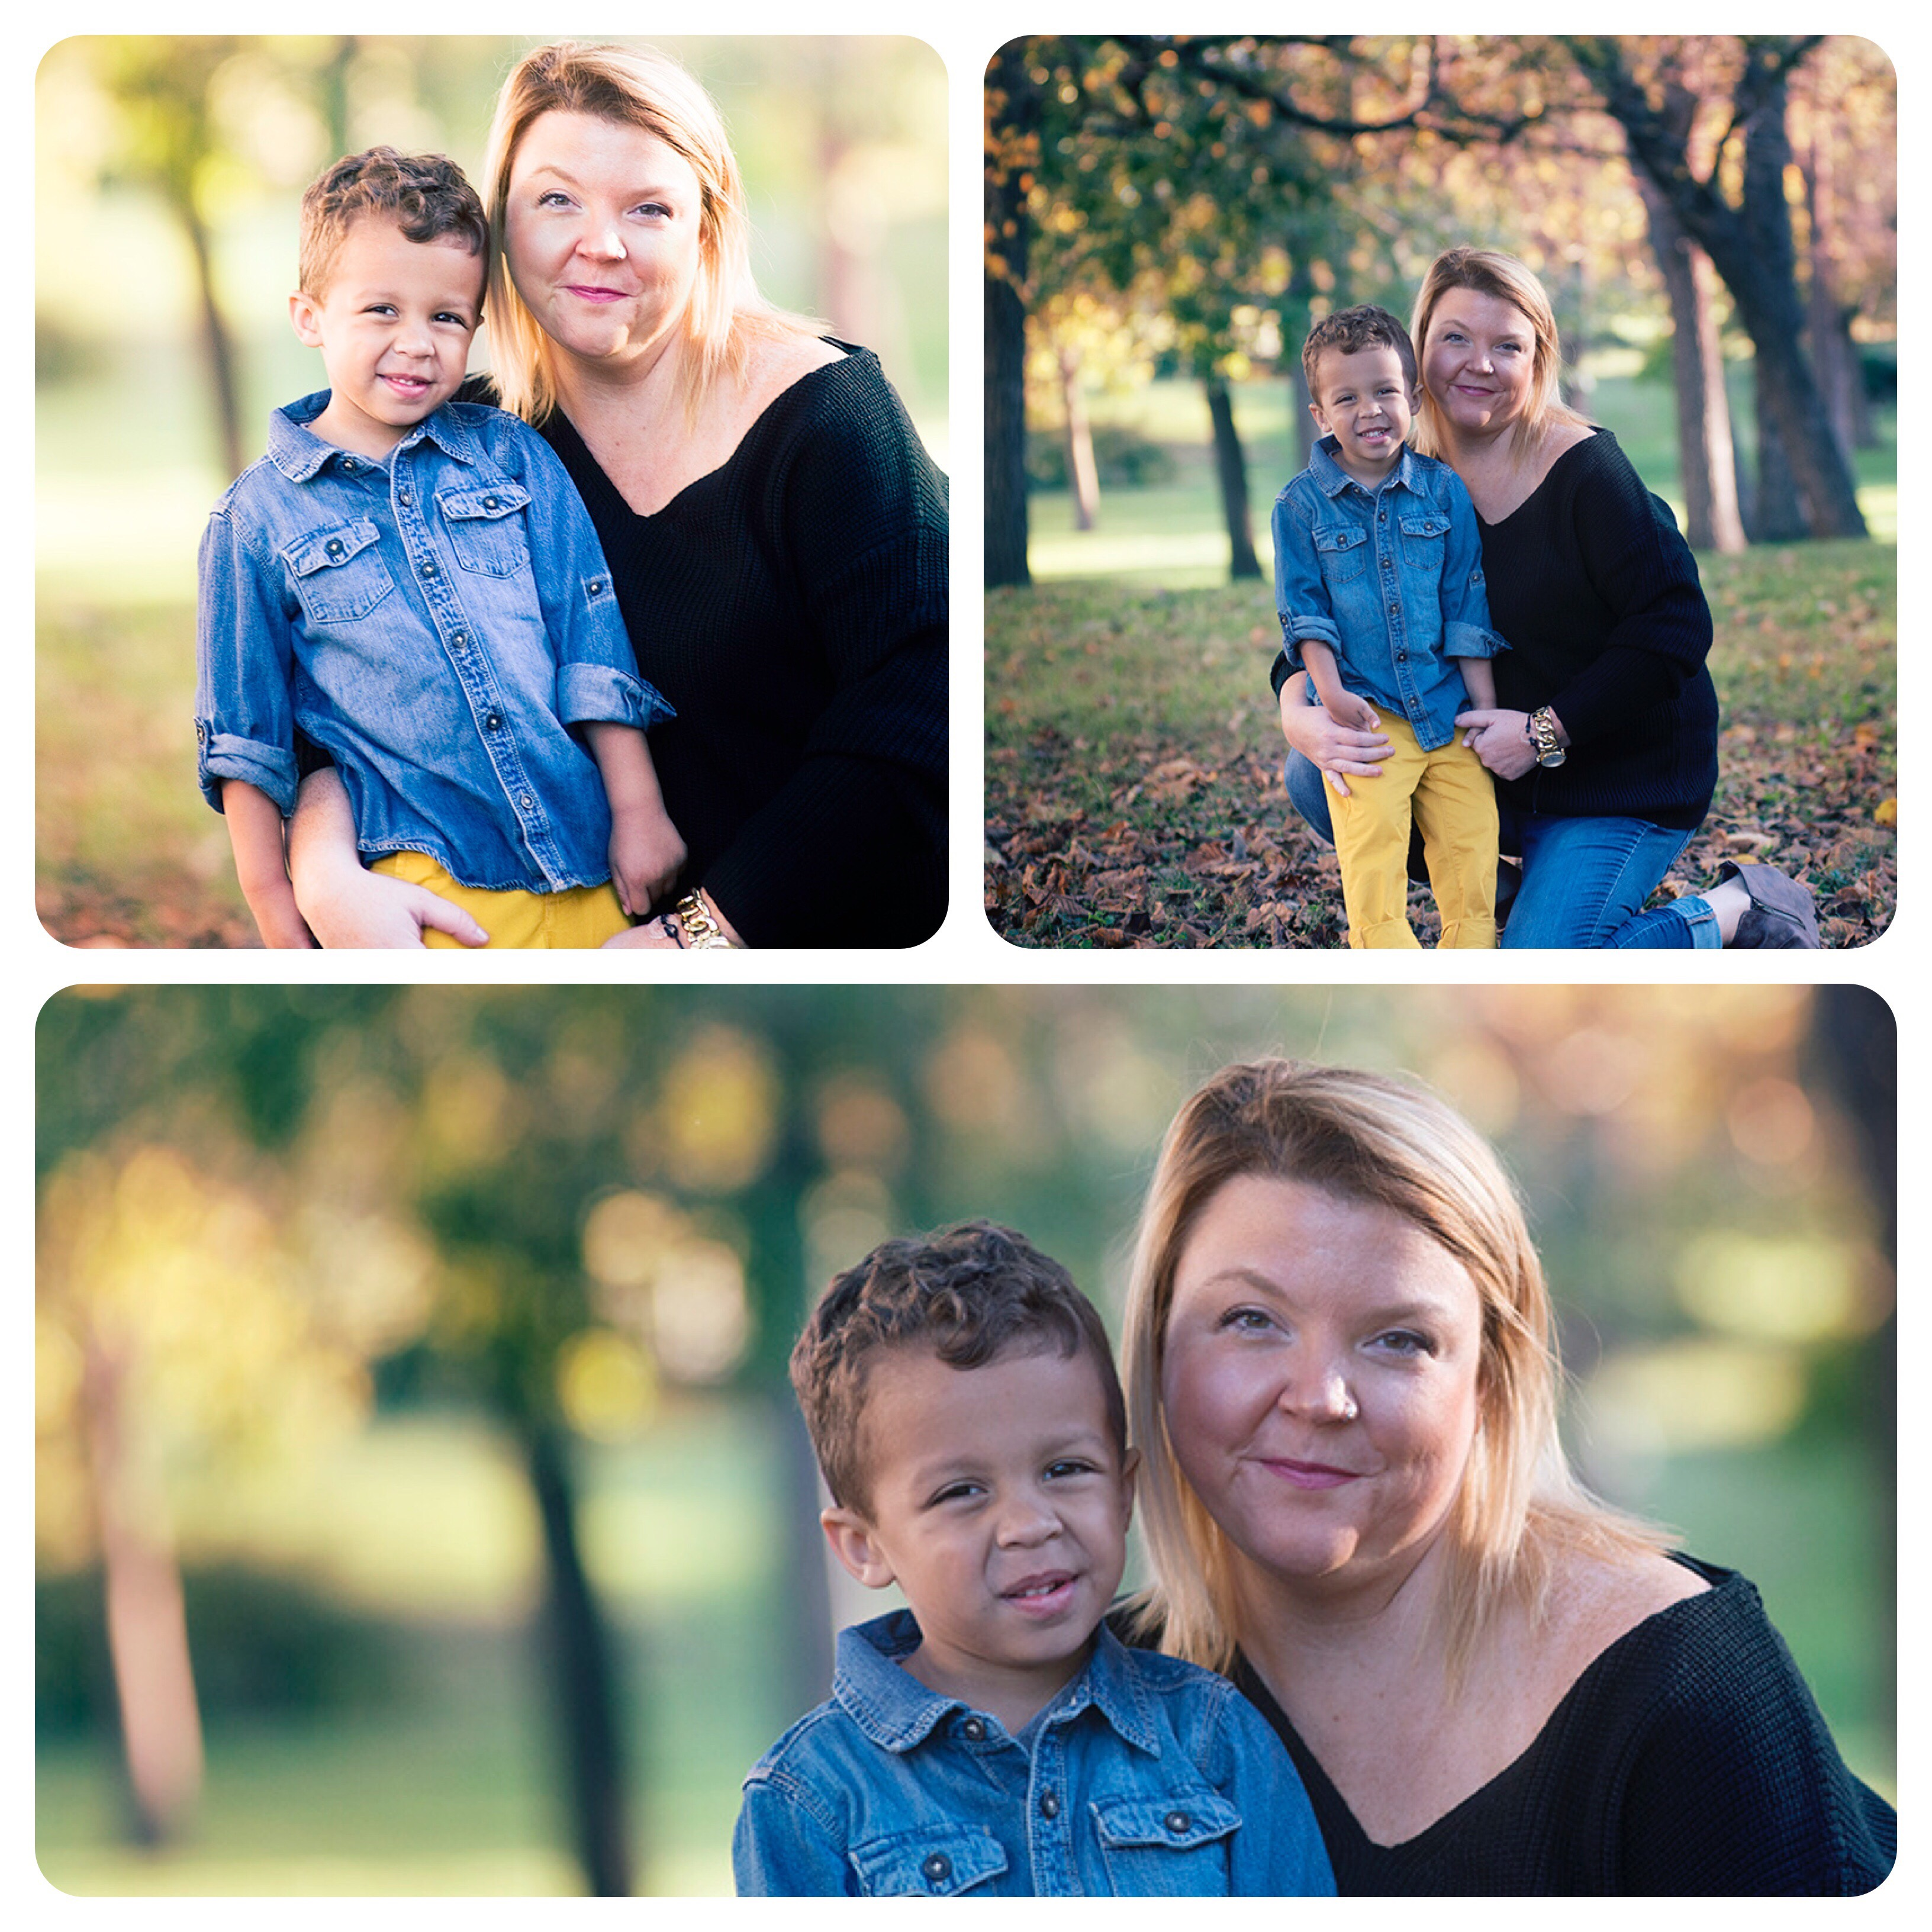 Family portraits of mother and child in Kansas by Trina Baker Photography